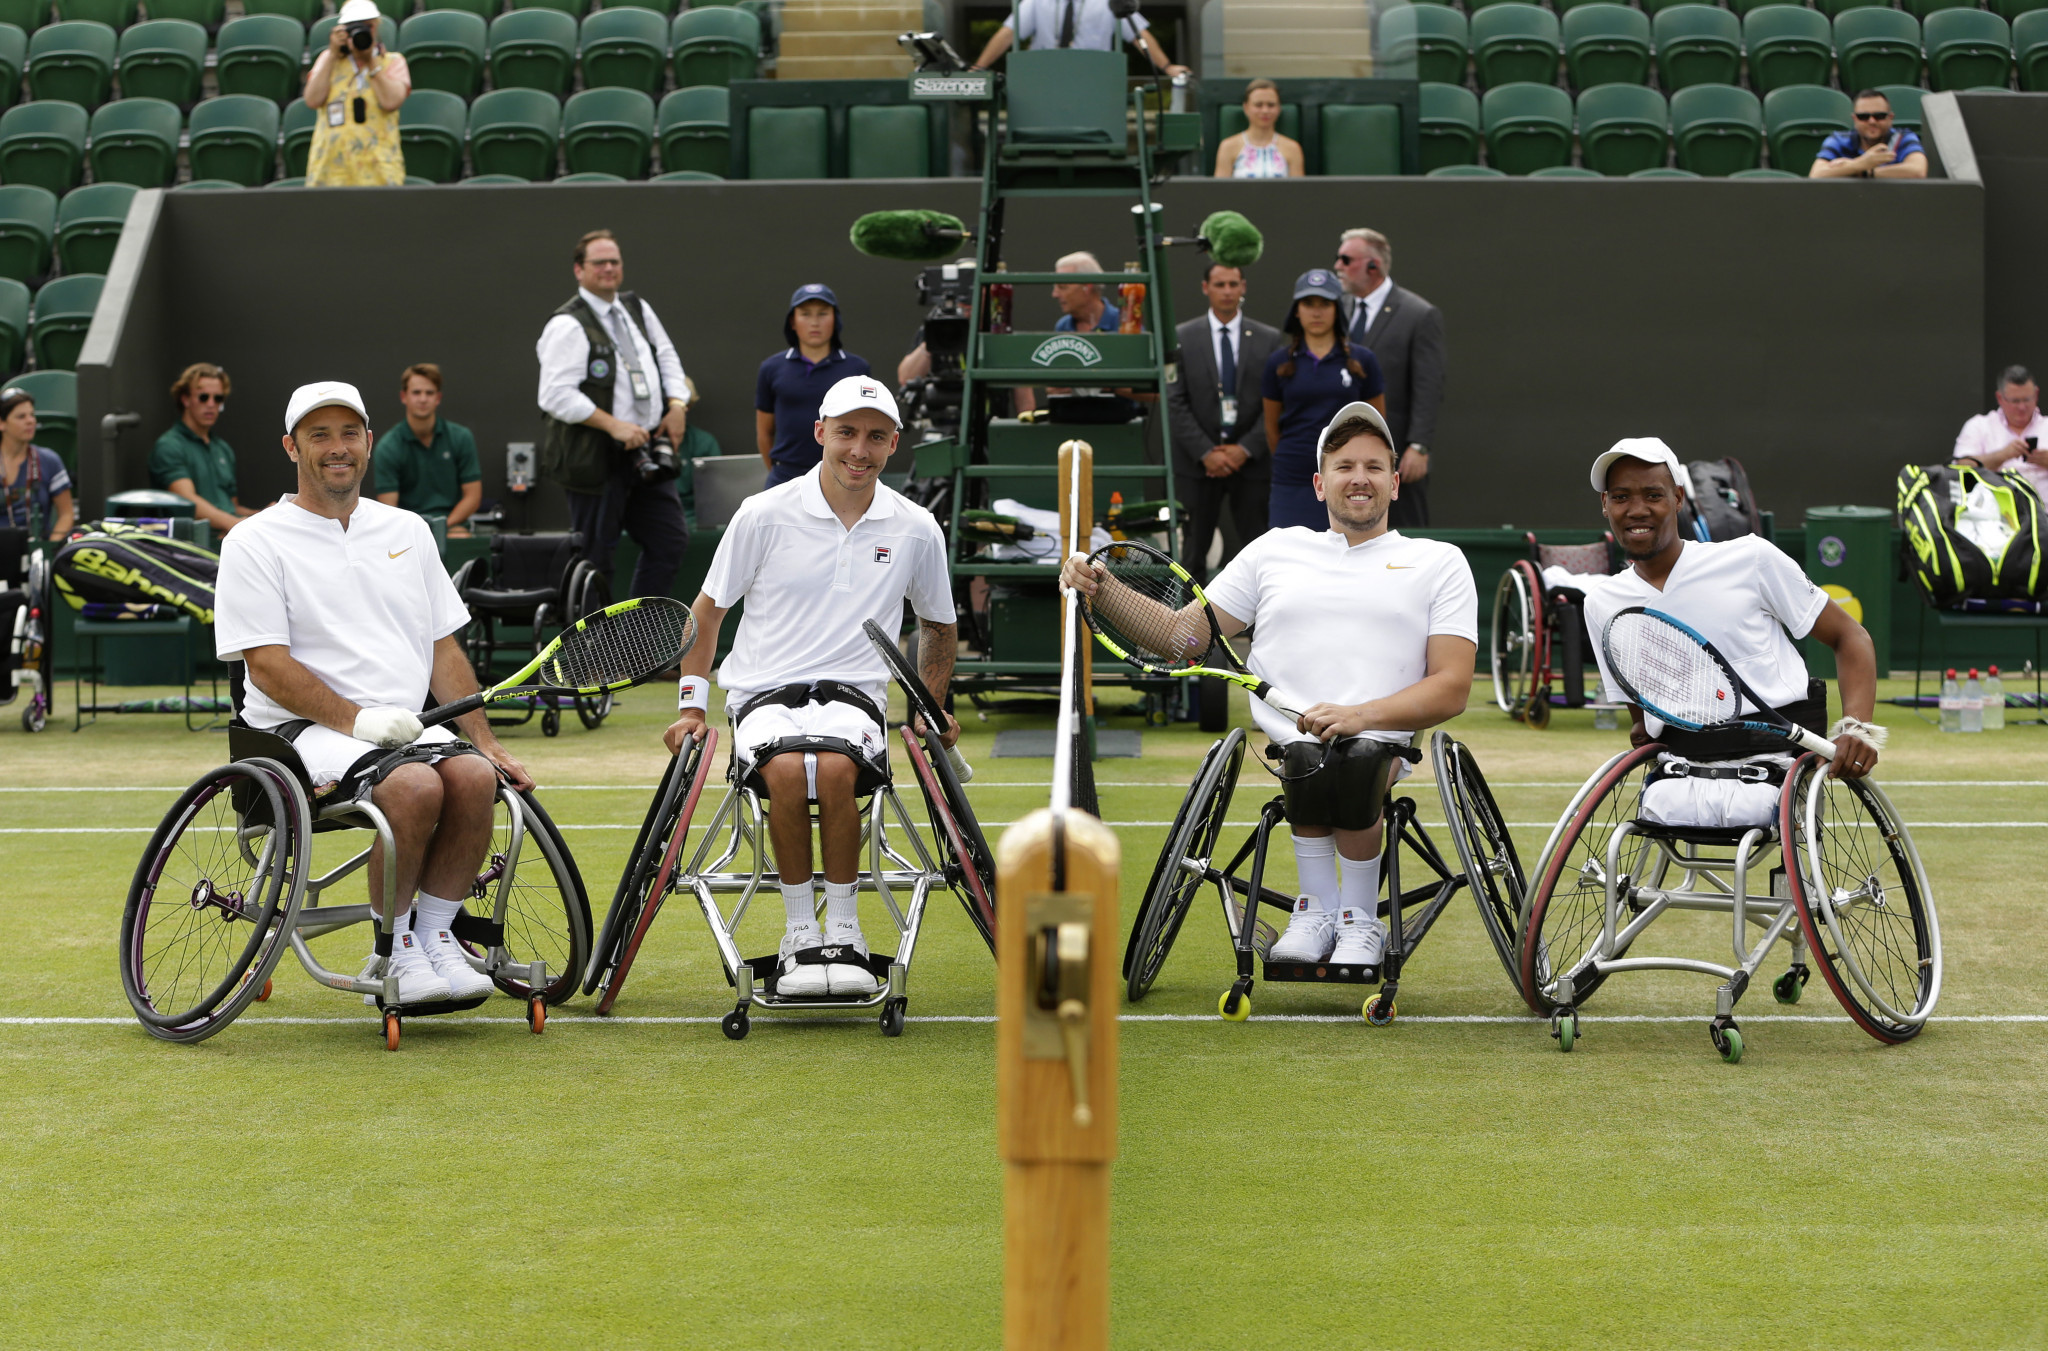 A quad doubles exhibition match took place at Wimbledon in 2018 ©Getty Images